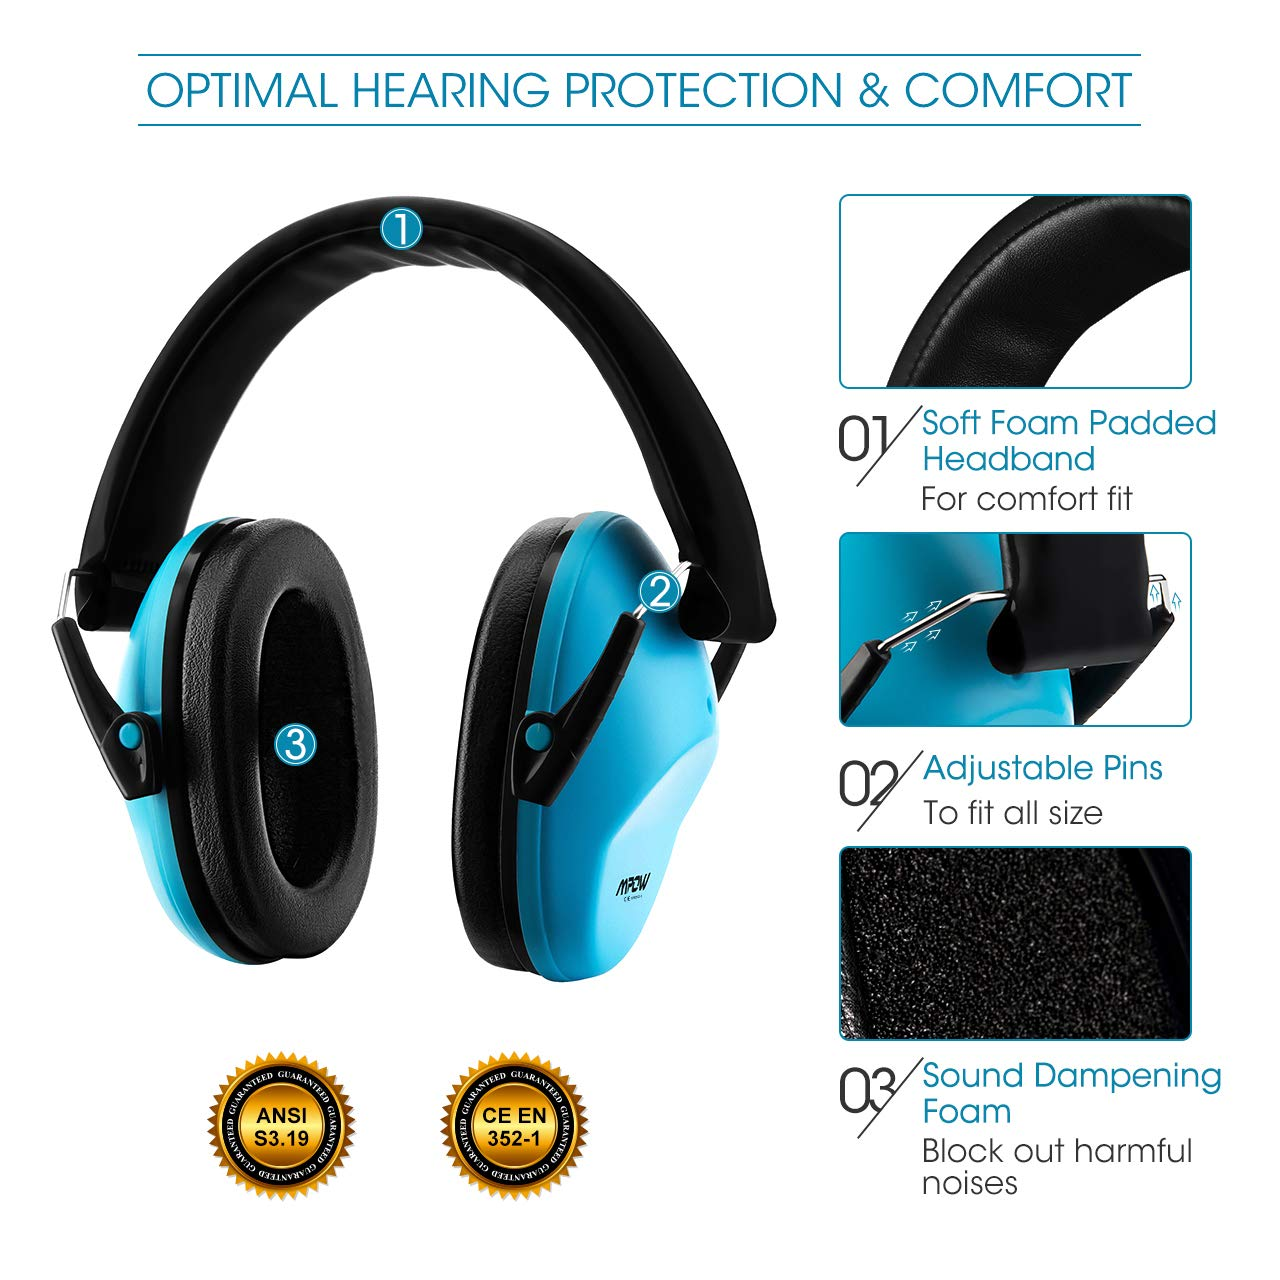 Baby Flight-Royal Blue Foldable Child Hearing Protection for Concert Toddlers Autism Firework SNR 29dB Noise Reduction Ear Protectors for Children Mpow 068 Kids Ear Defenders with Carrying Bag